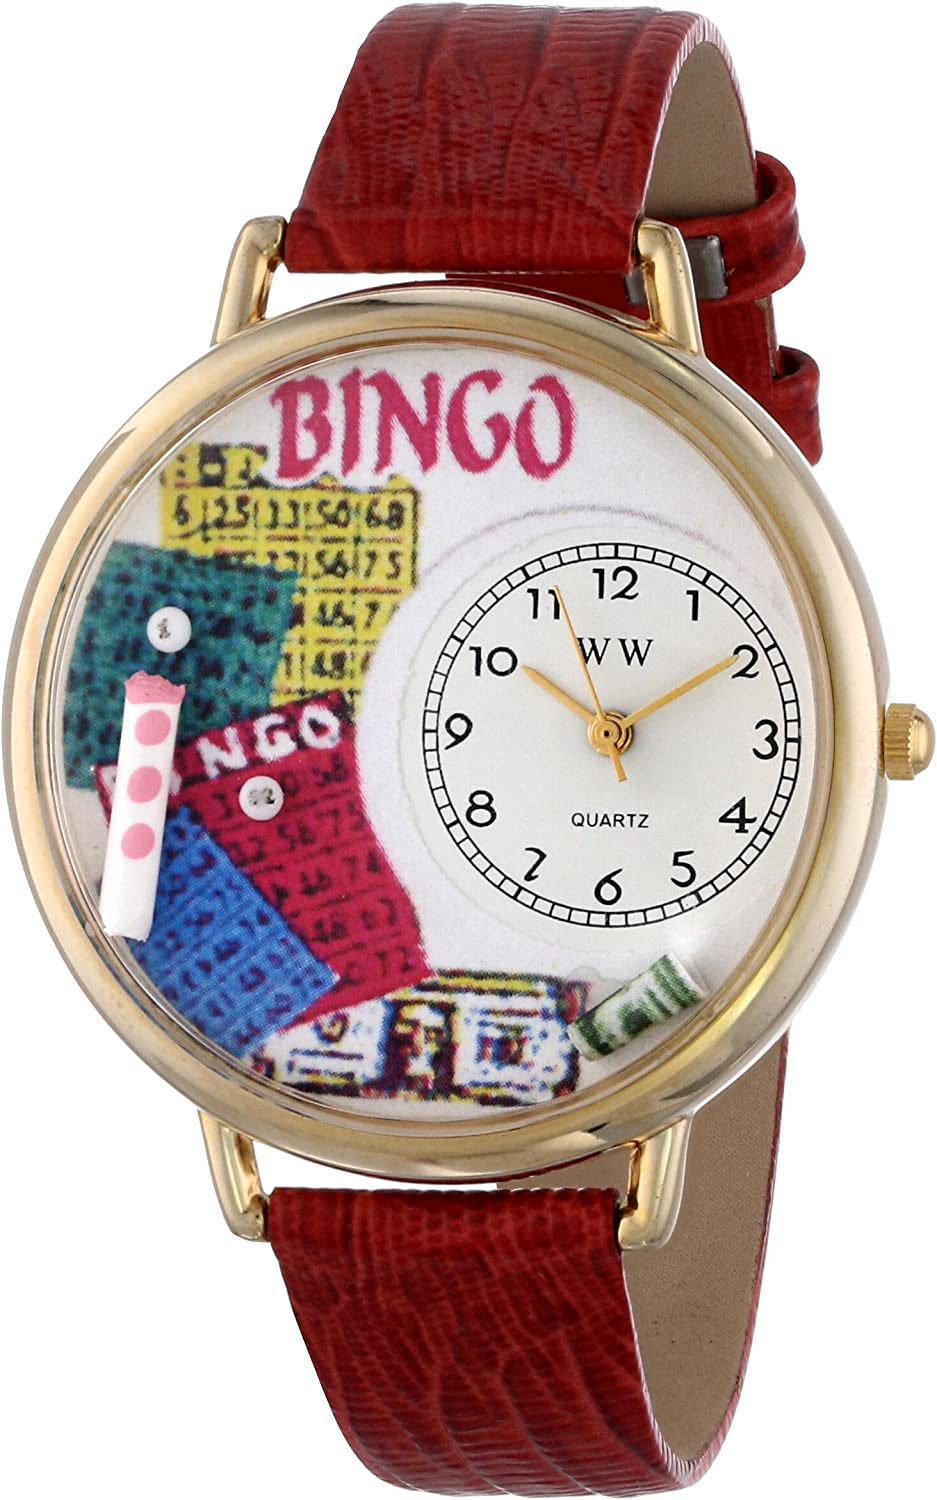 Whimsical Watches Unisex G0430007 Bingo Red Leather Watch